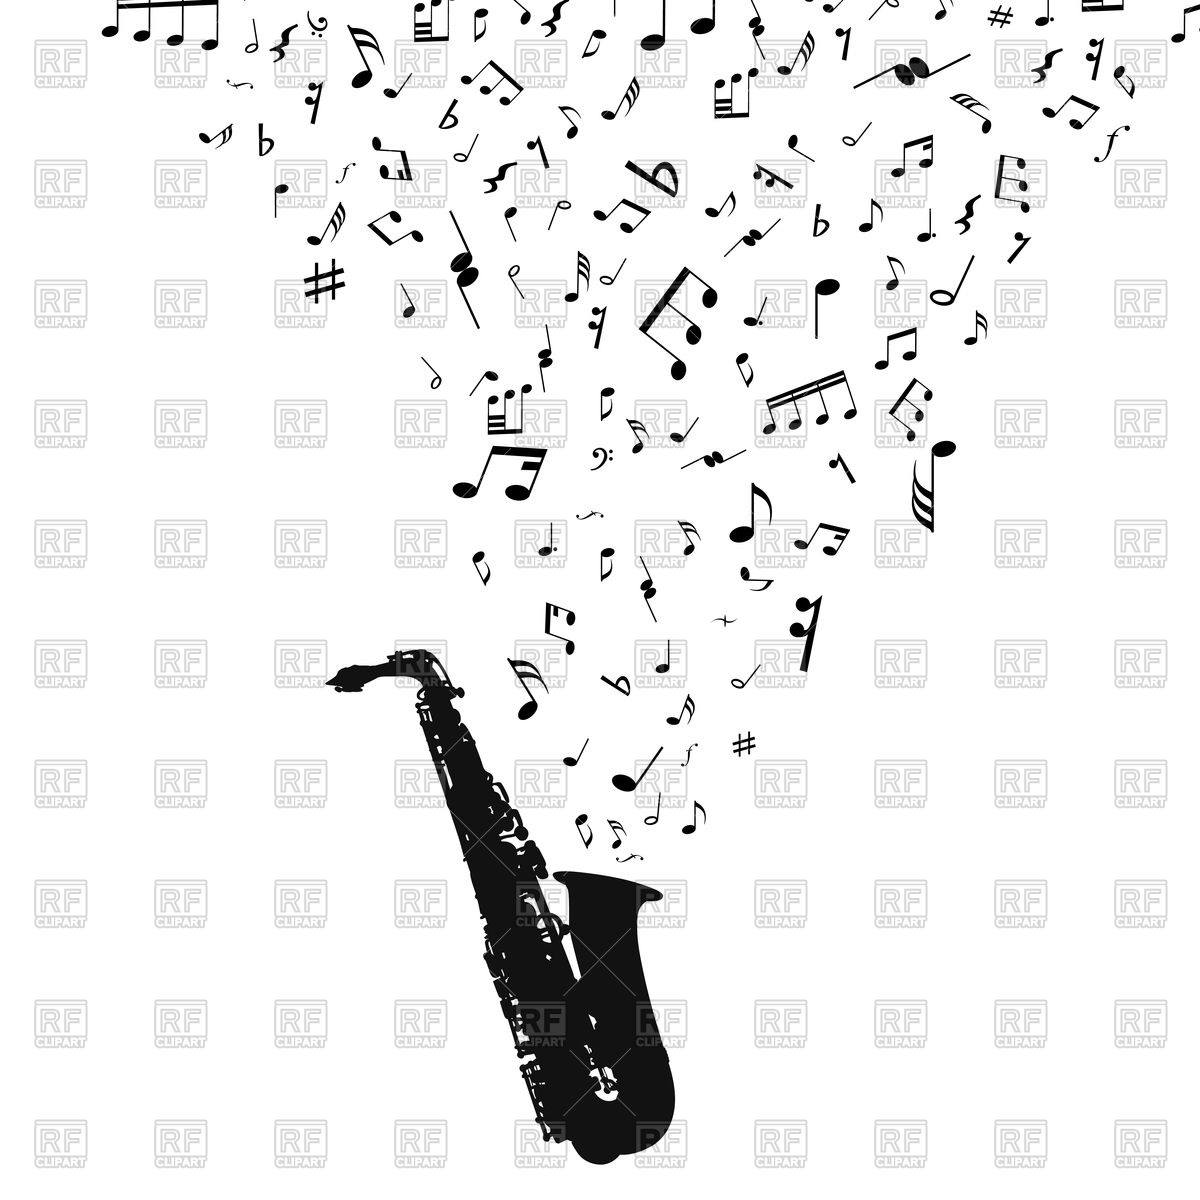 1200x1200 Saxophone With Musical Notes Vector Image Vector Artwork Of